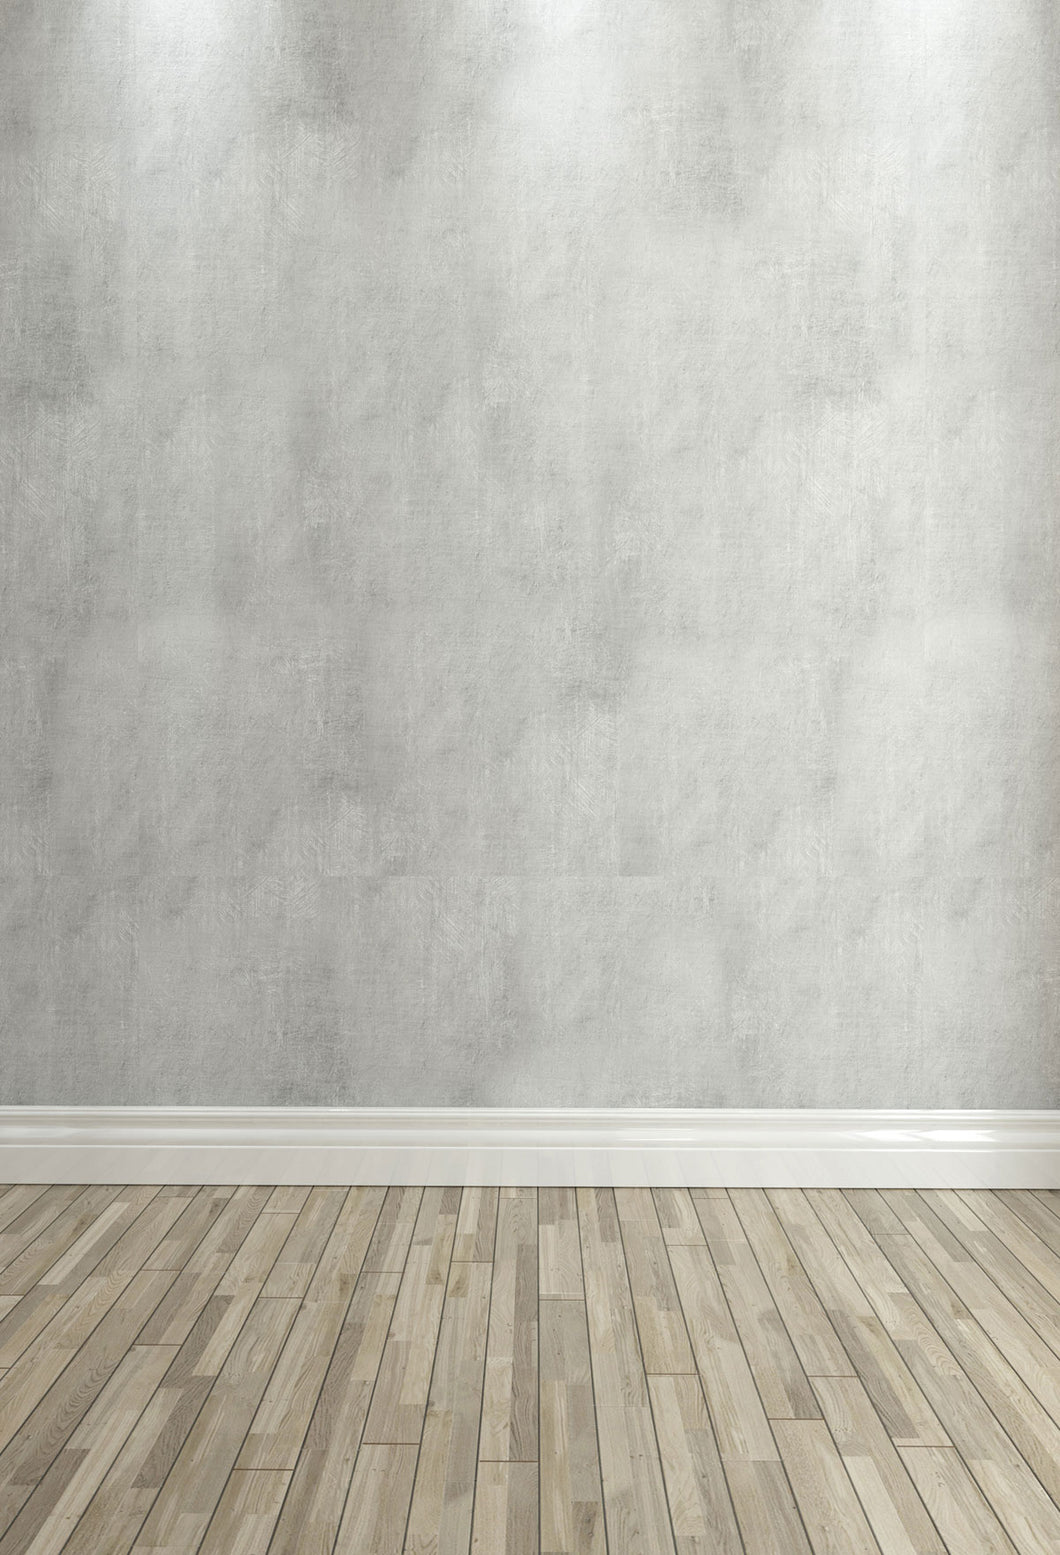 Kate Retro Gray Backdrop Wall Brown Floor for Children Photo